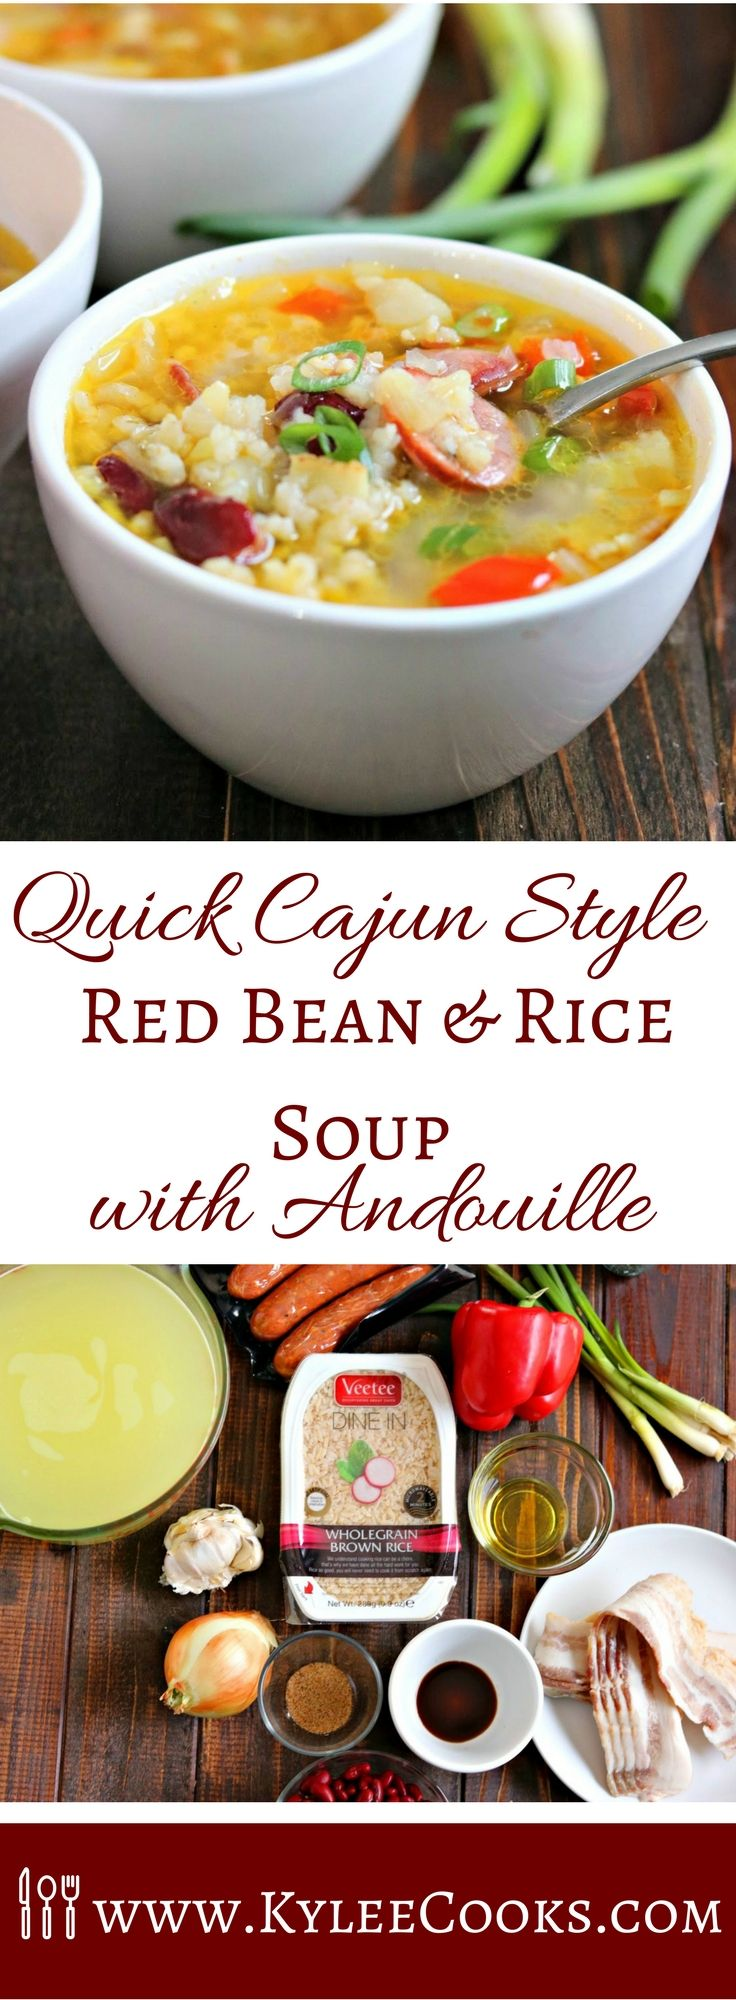 A deliciously spiced, filling soup, packed with bacon, andouille sausage and rice - this Cajun Style Red Bean & Rice Soup is a stick-to-your-ribs soon-to-be favorite! @veeteeusa #sponsored